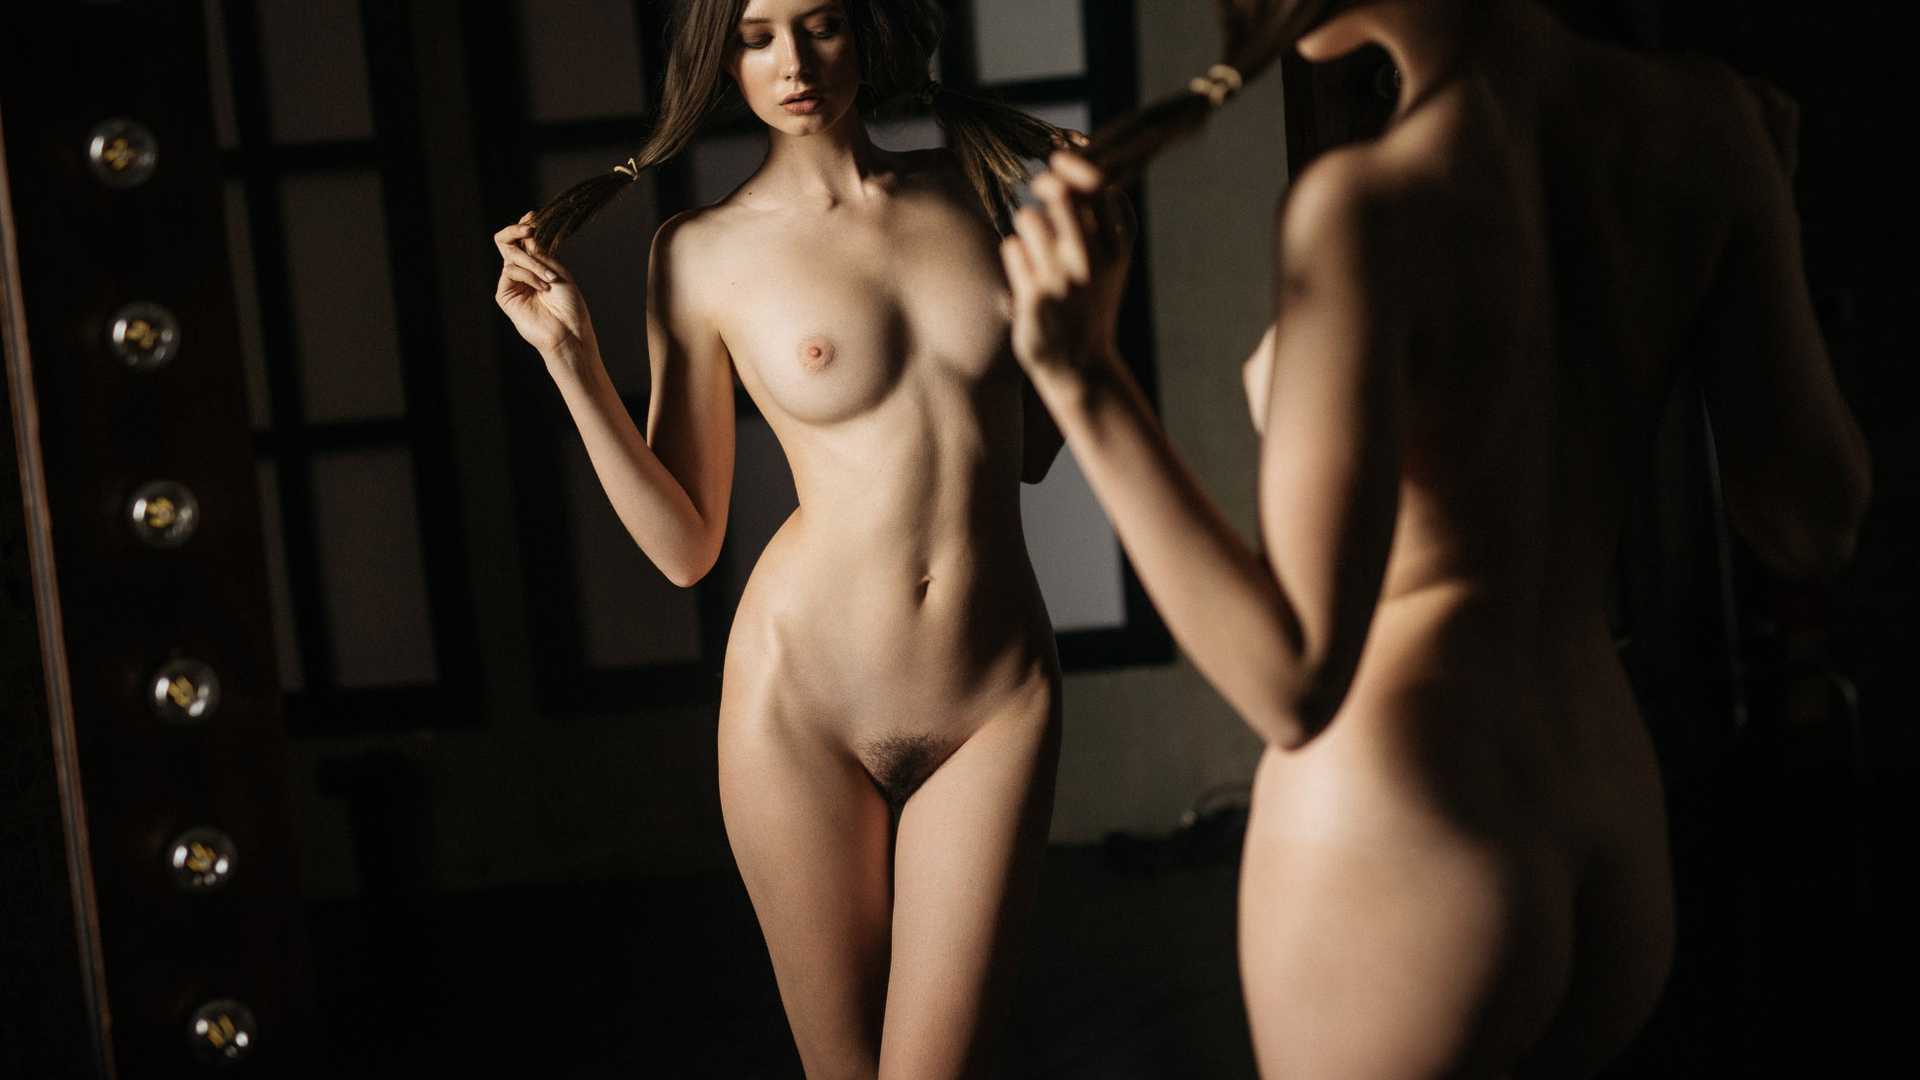 Women And Sex Hard Russian Lady Naked Live Fuckin Photo Live Homely And Also Search For Nude Nabores